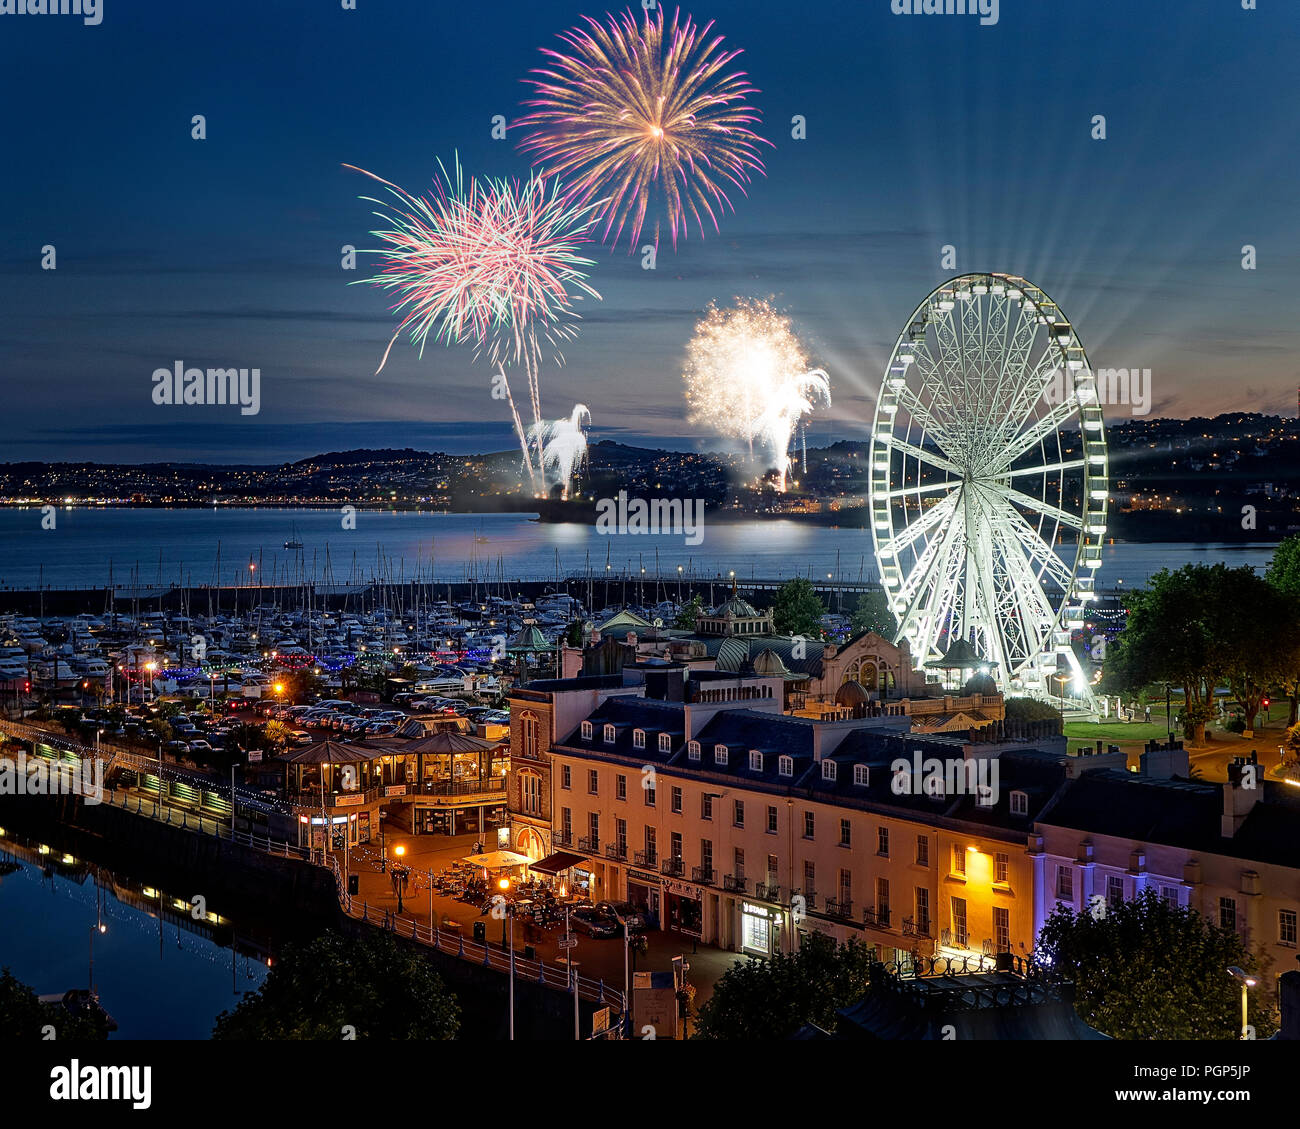 GB - DEVON: Fireworks over Torquay - Stock Image